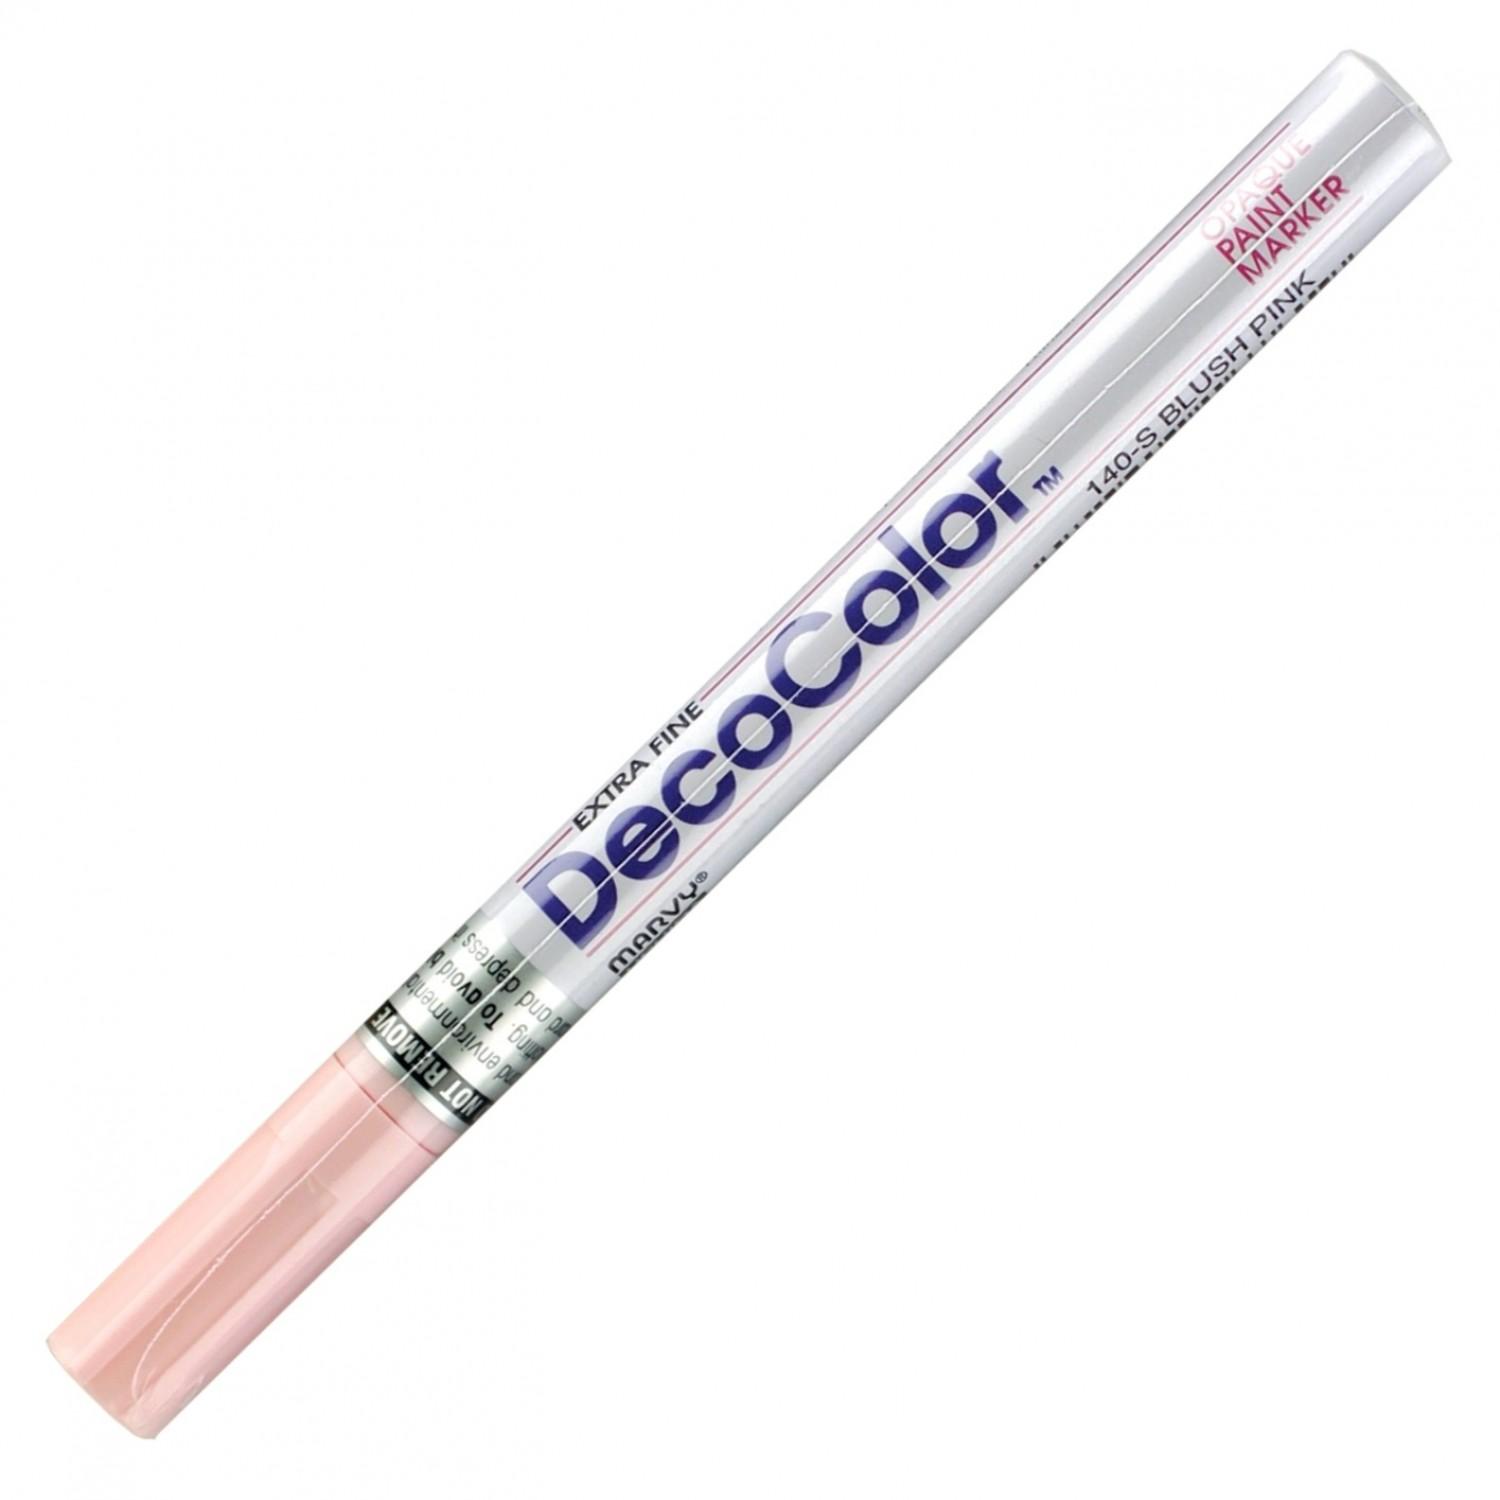 Marvy Decocolor Paint Marker XF Blush Pink